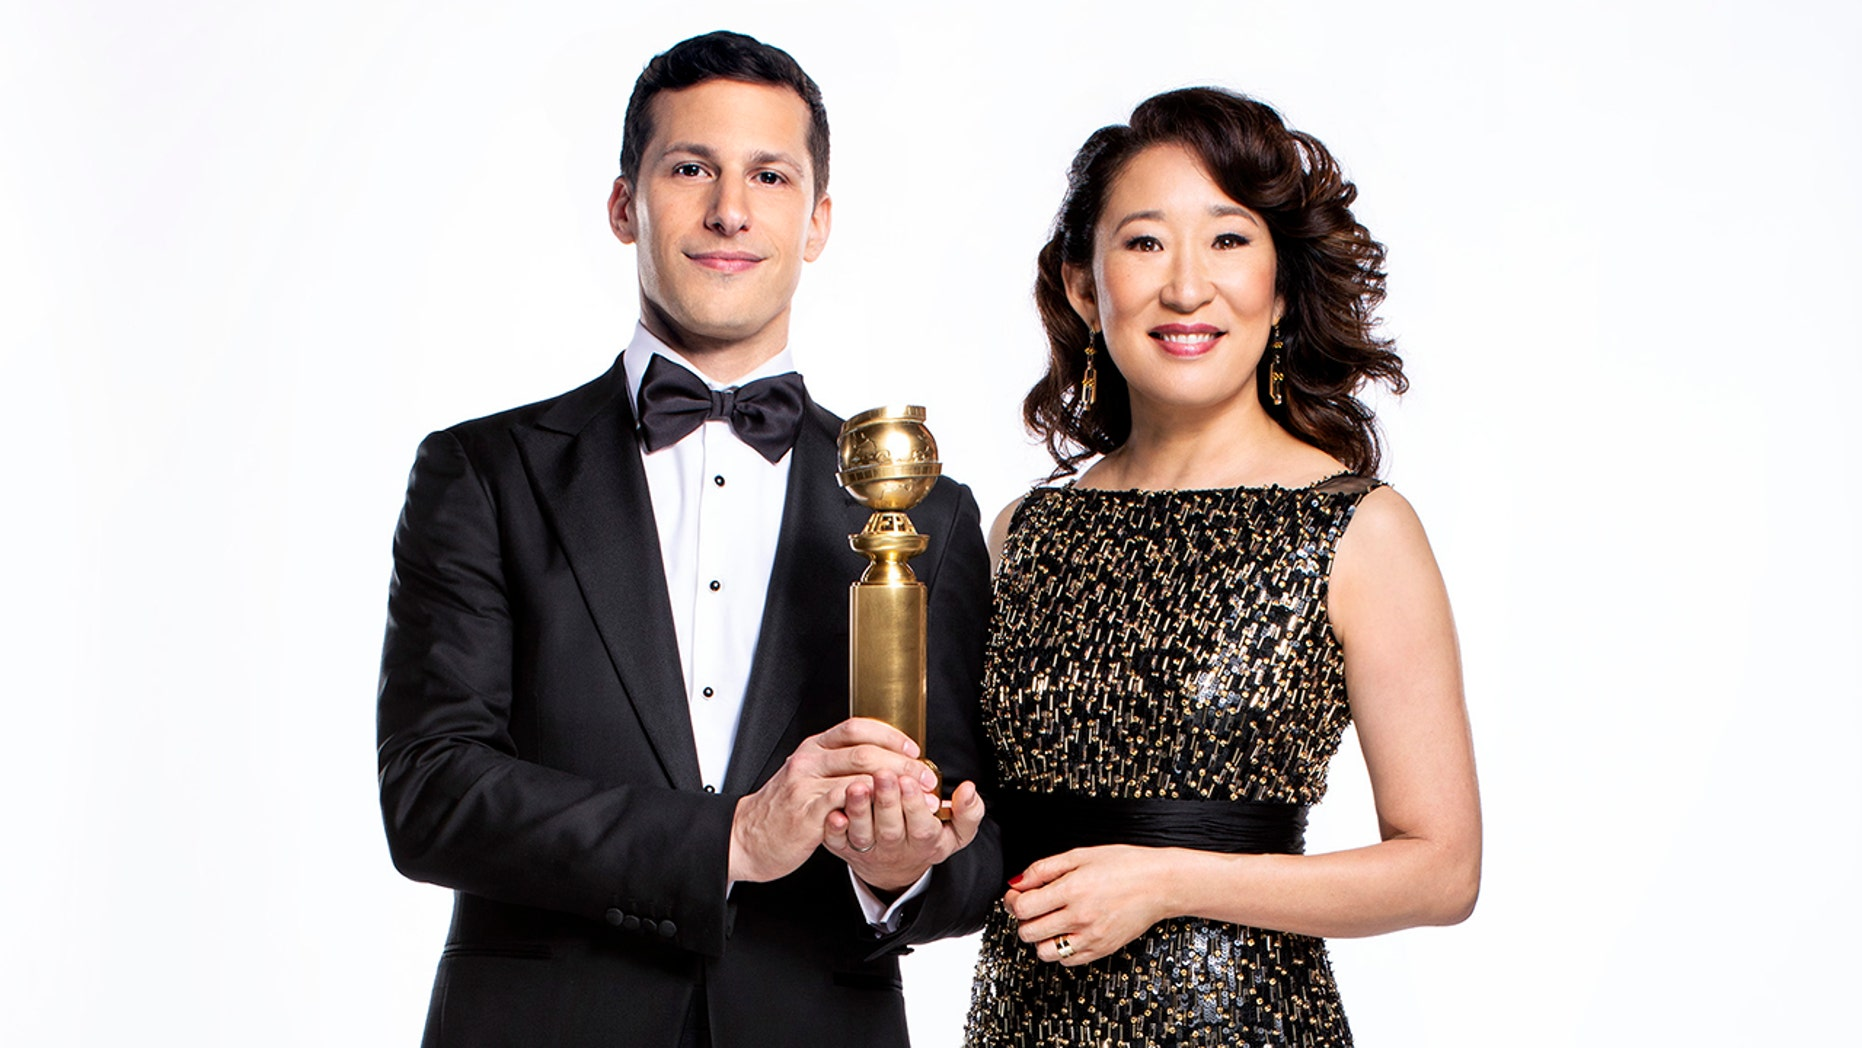 Golden Globes 2019: What to expect from the big show